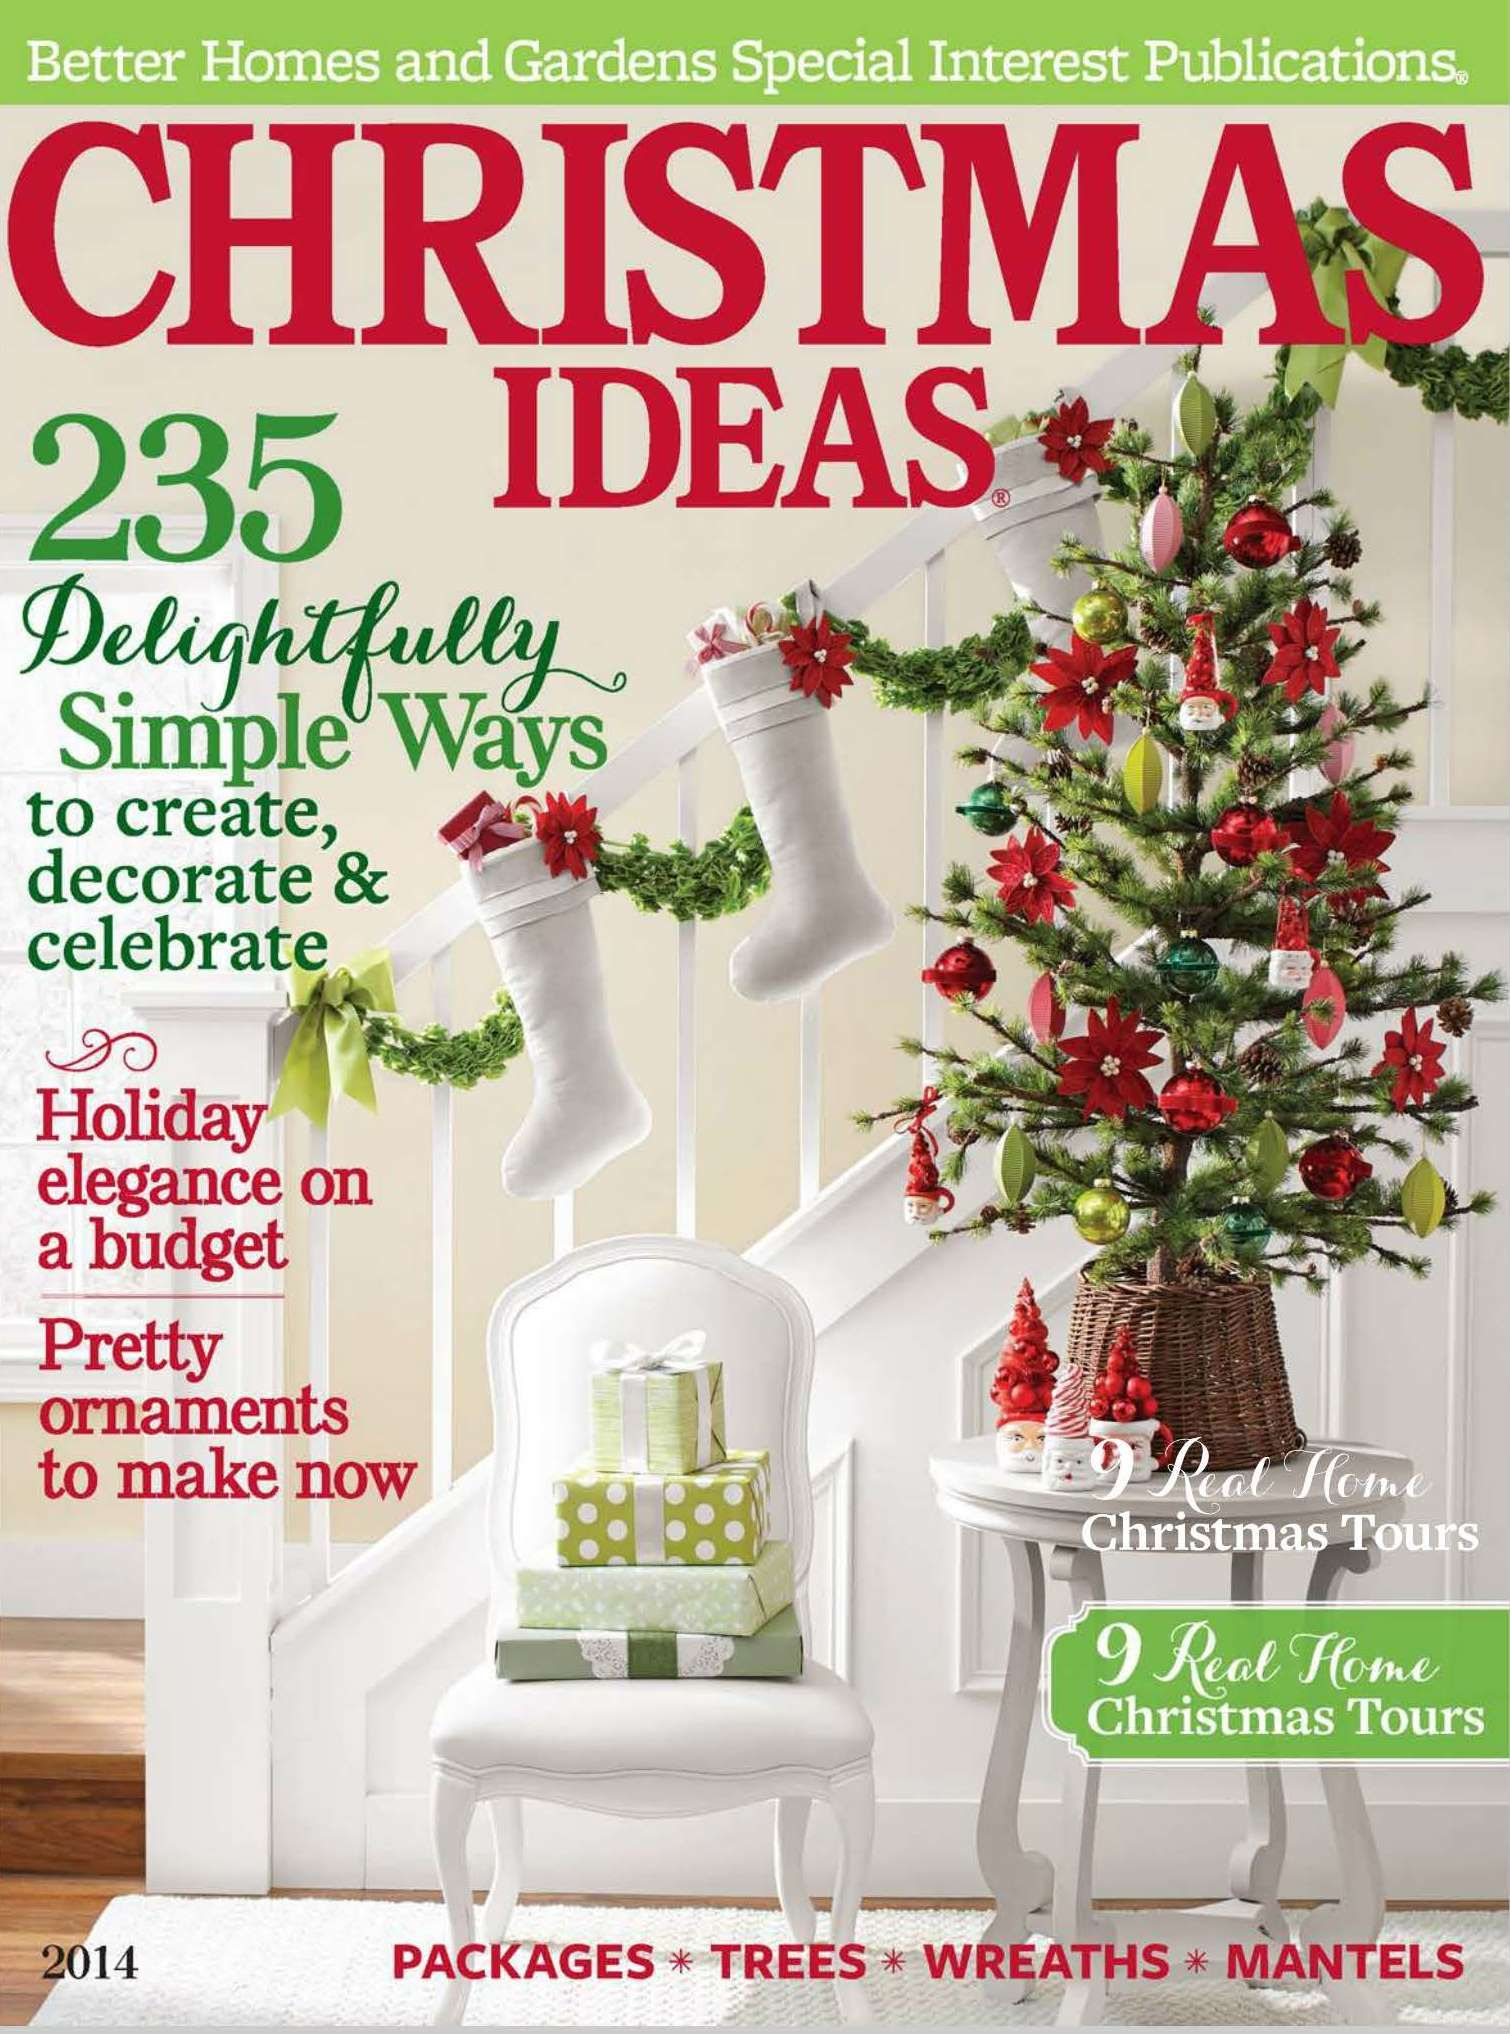 Better Homes And Gardens Christmas Decorating Ideas | Euffslemani.com